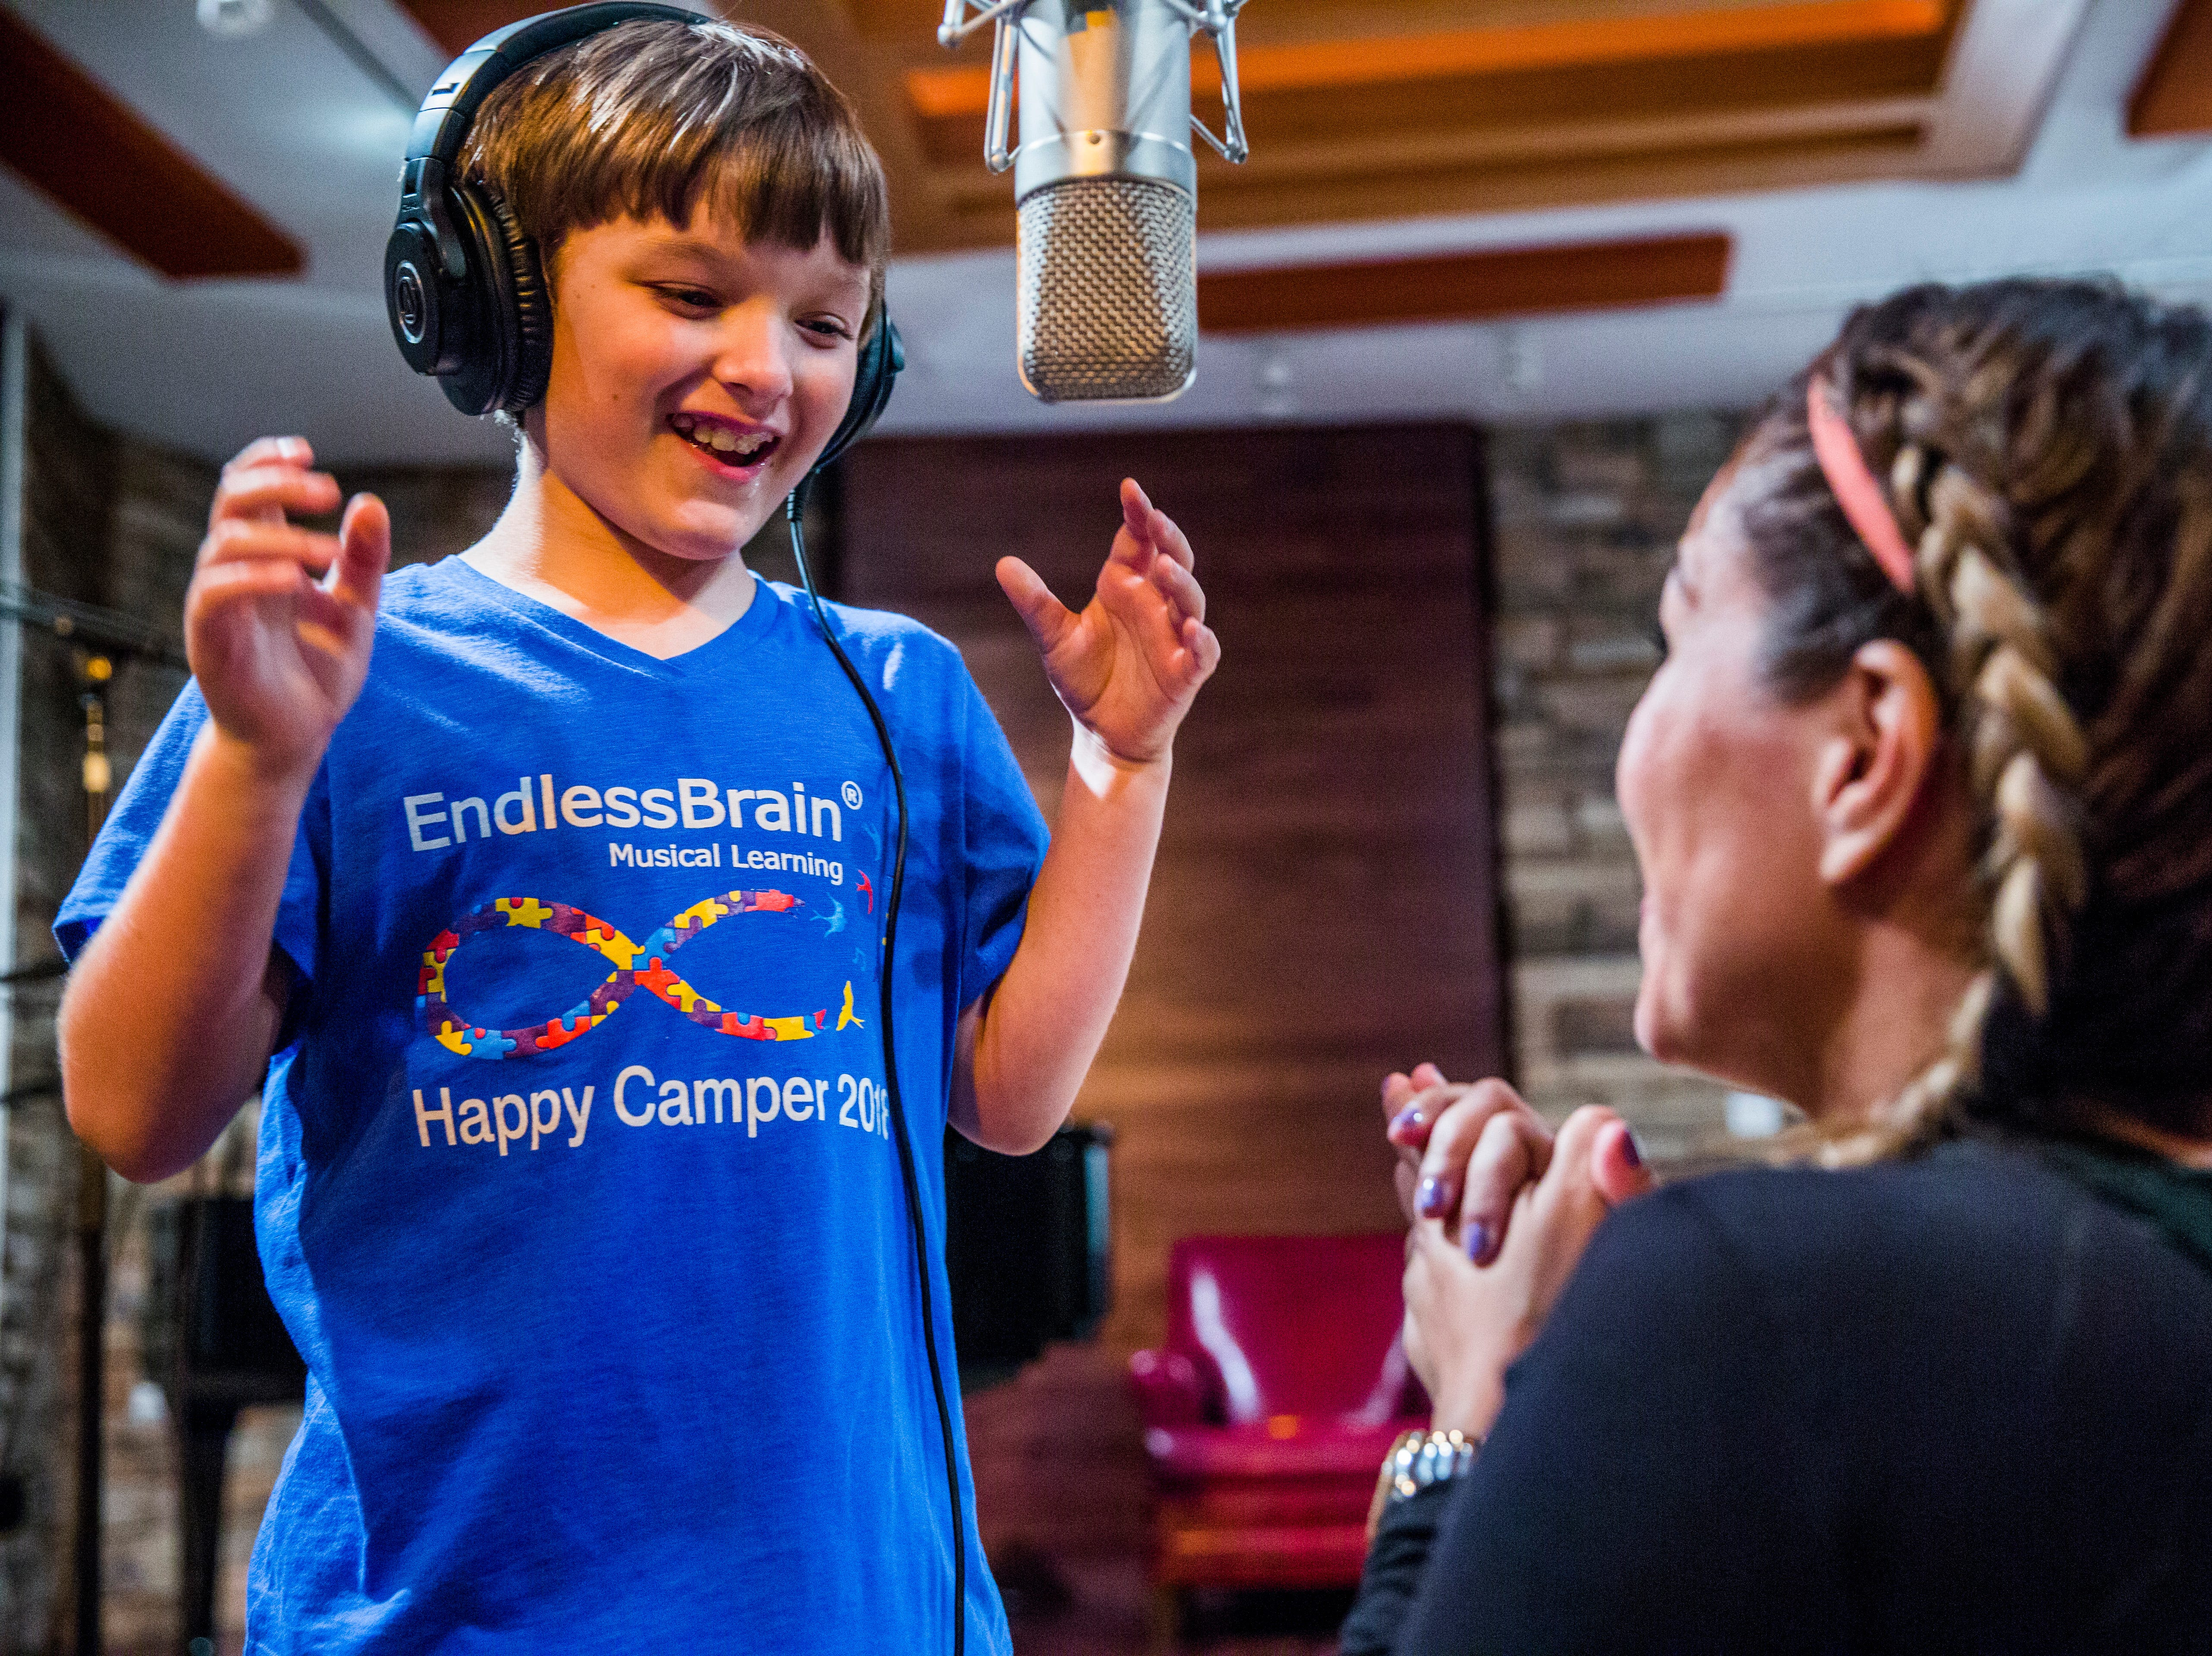 Marcela Guimoye encourages Harry Conroy, 10, as he sings at Mastertrax Recording Studio in Bonita Springs on Tuesday, Aug. 7, 2018. Guimoye put together a CD of the songs that the kids learned during the EndlessBrain summer camp.